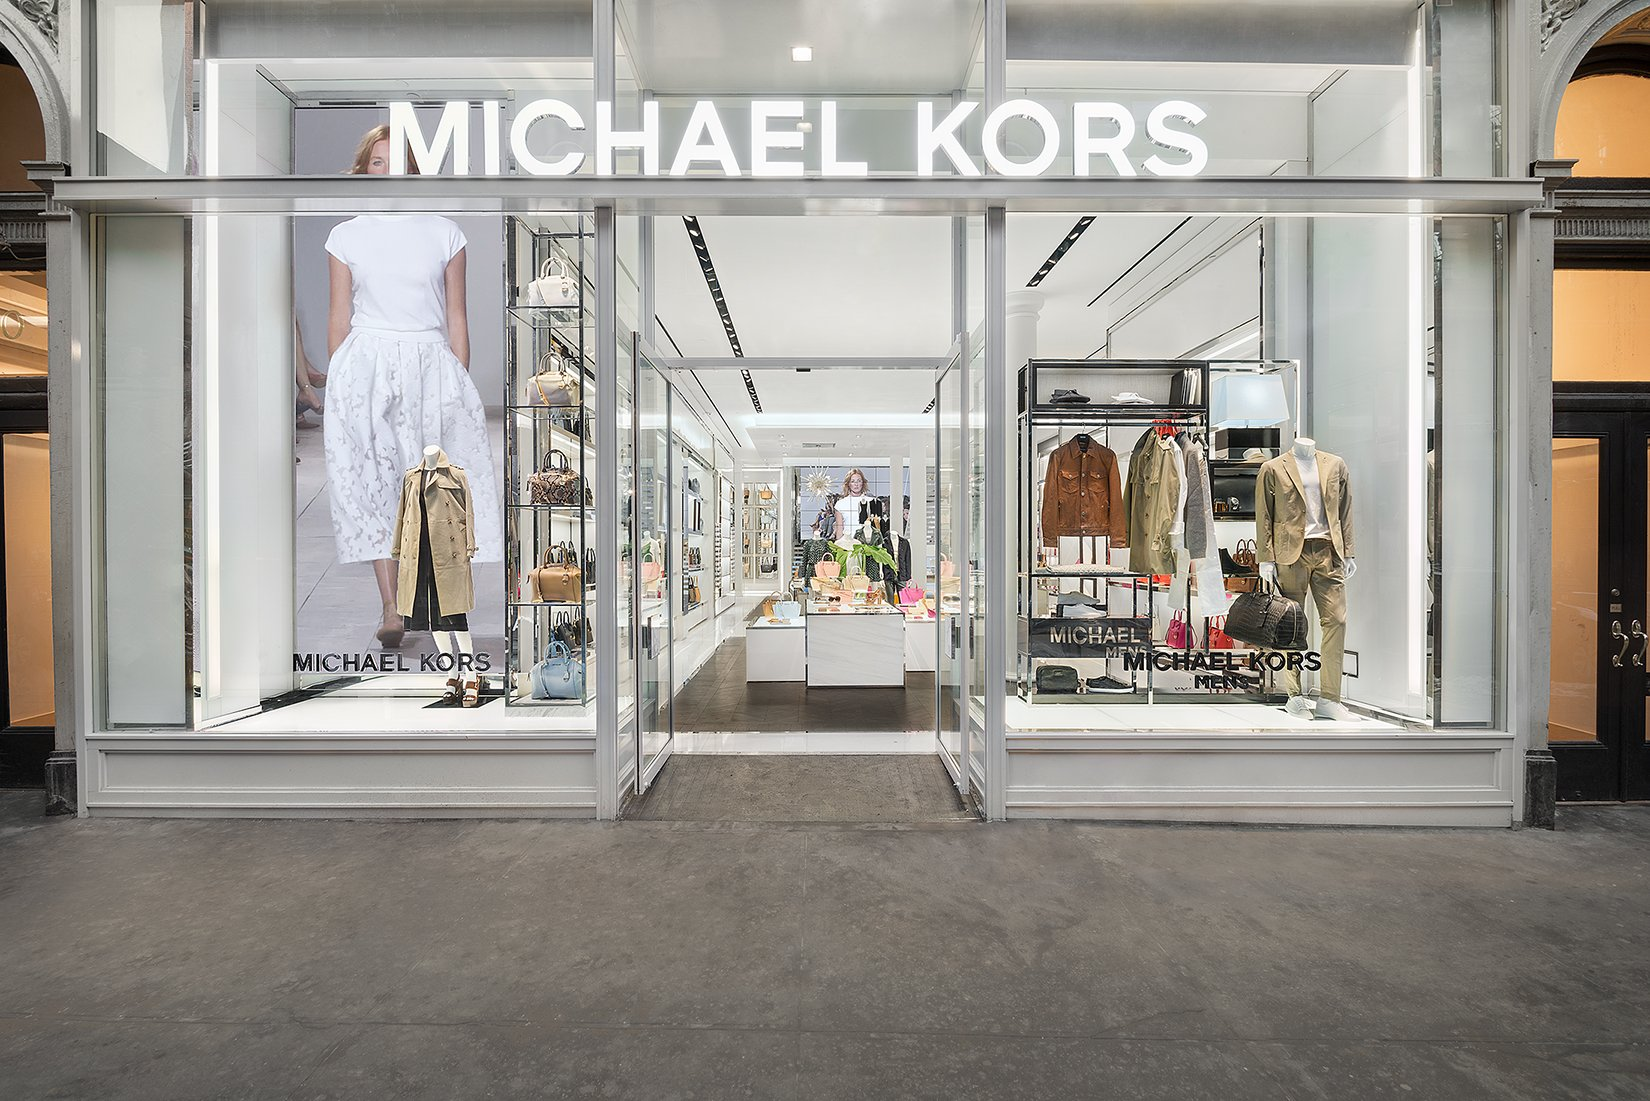 Michael Kors Store Photo